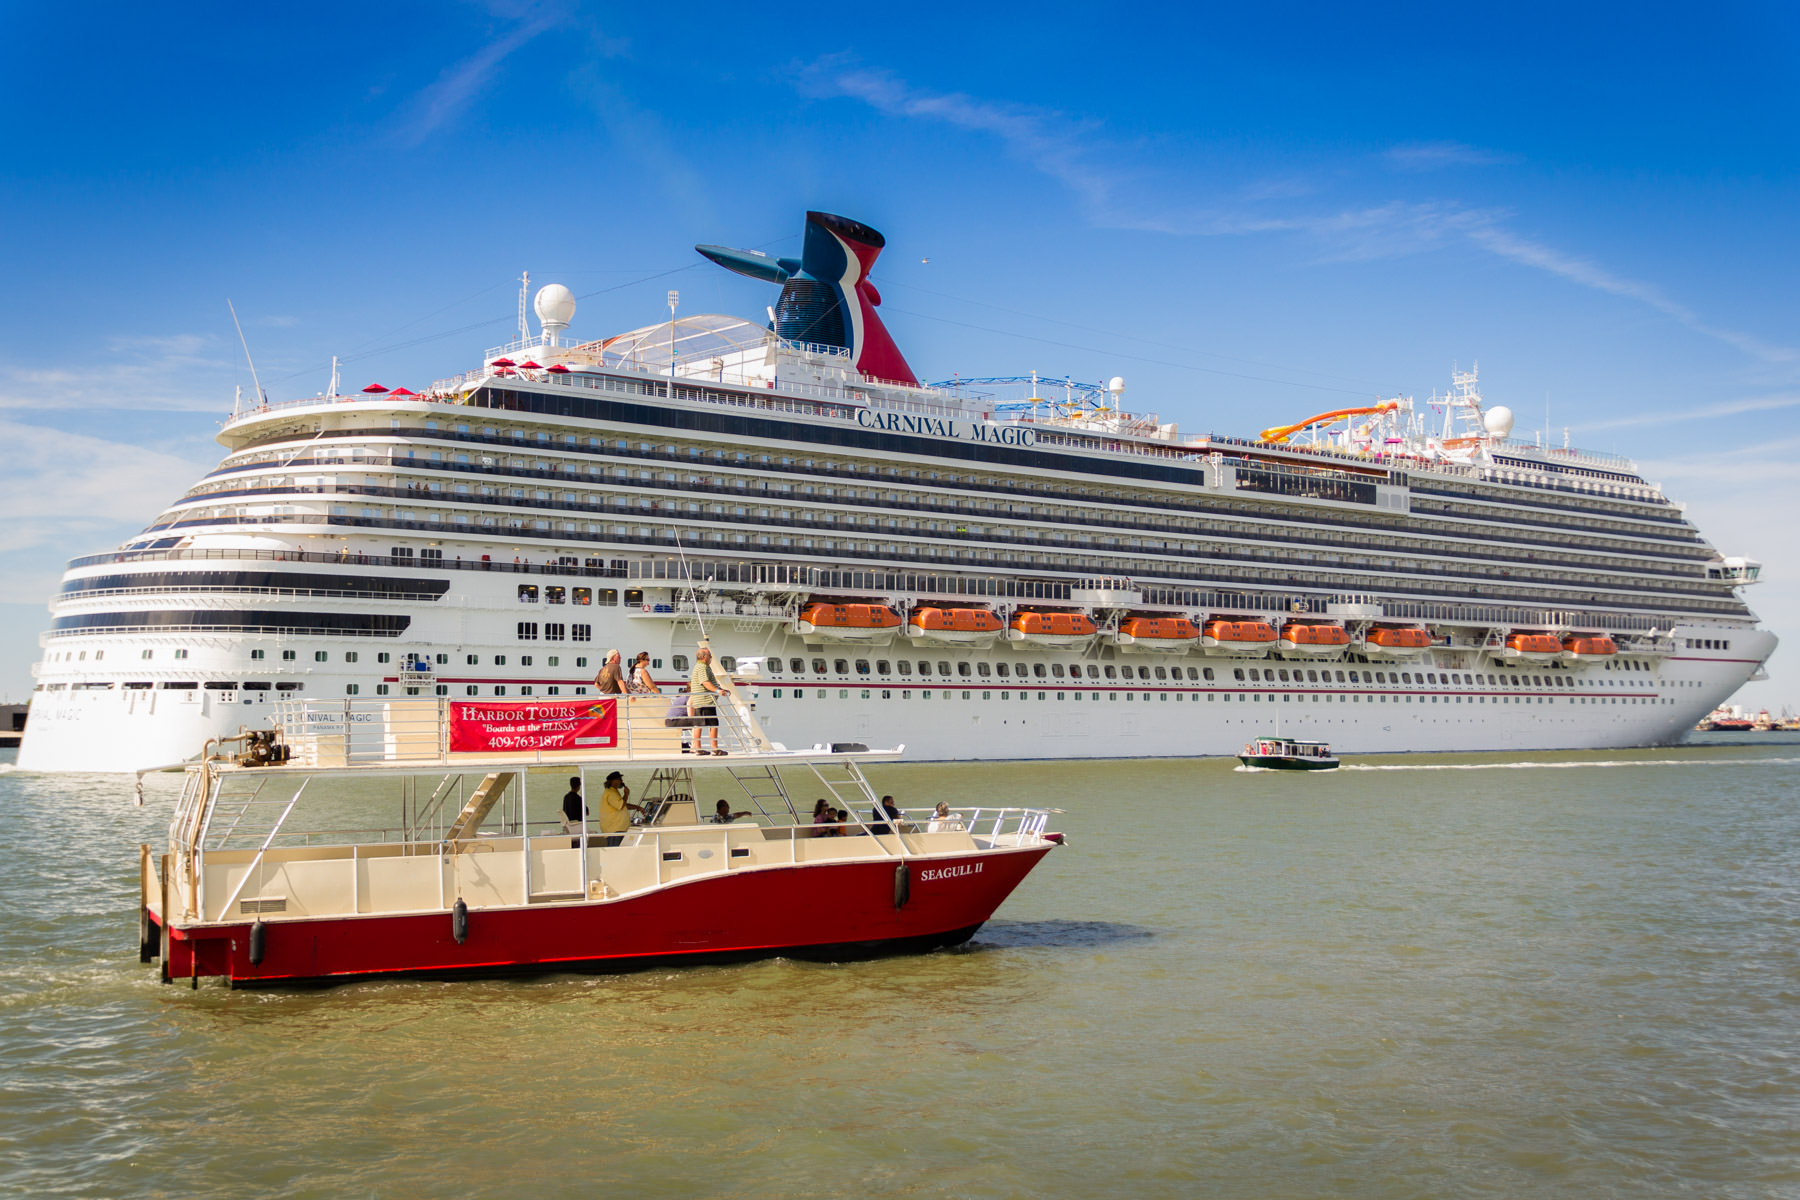 The Carnival Magic leaves the Port of Galveston, Texas.